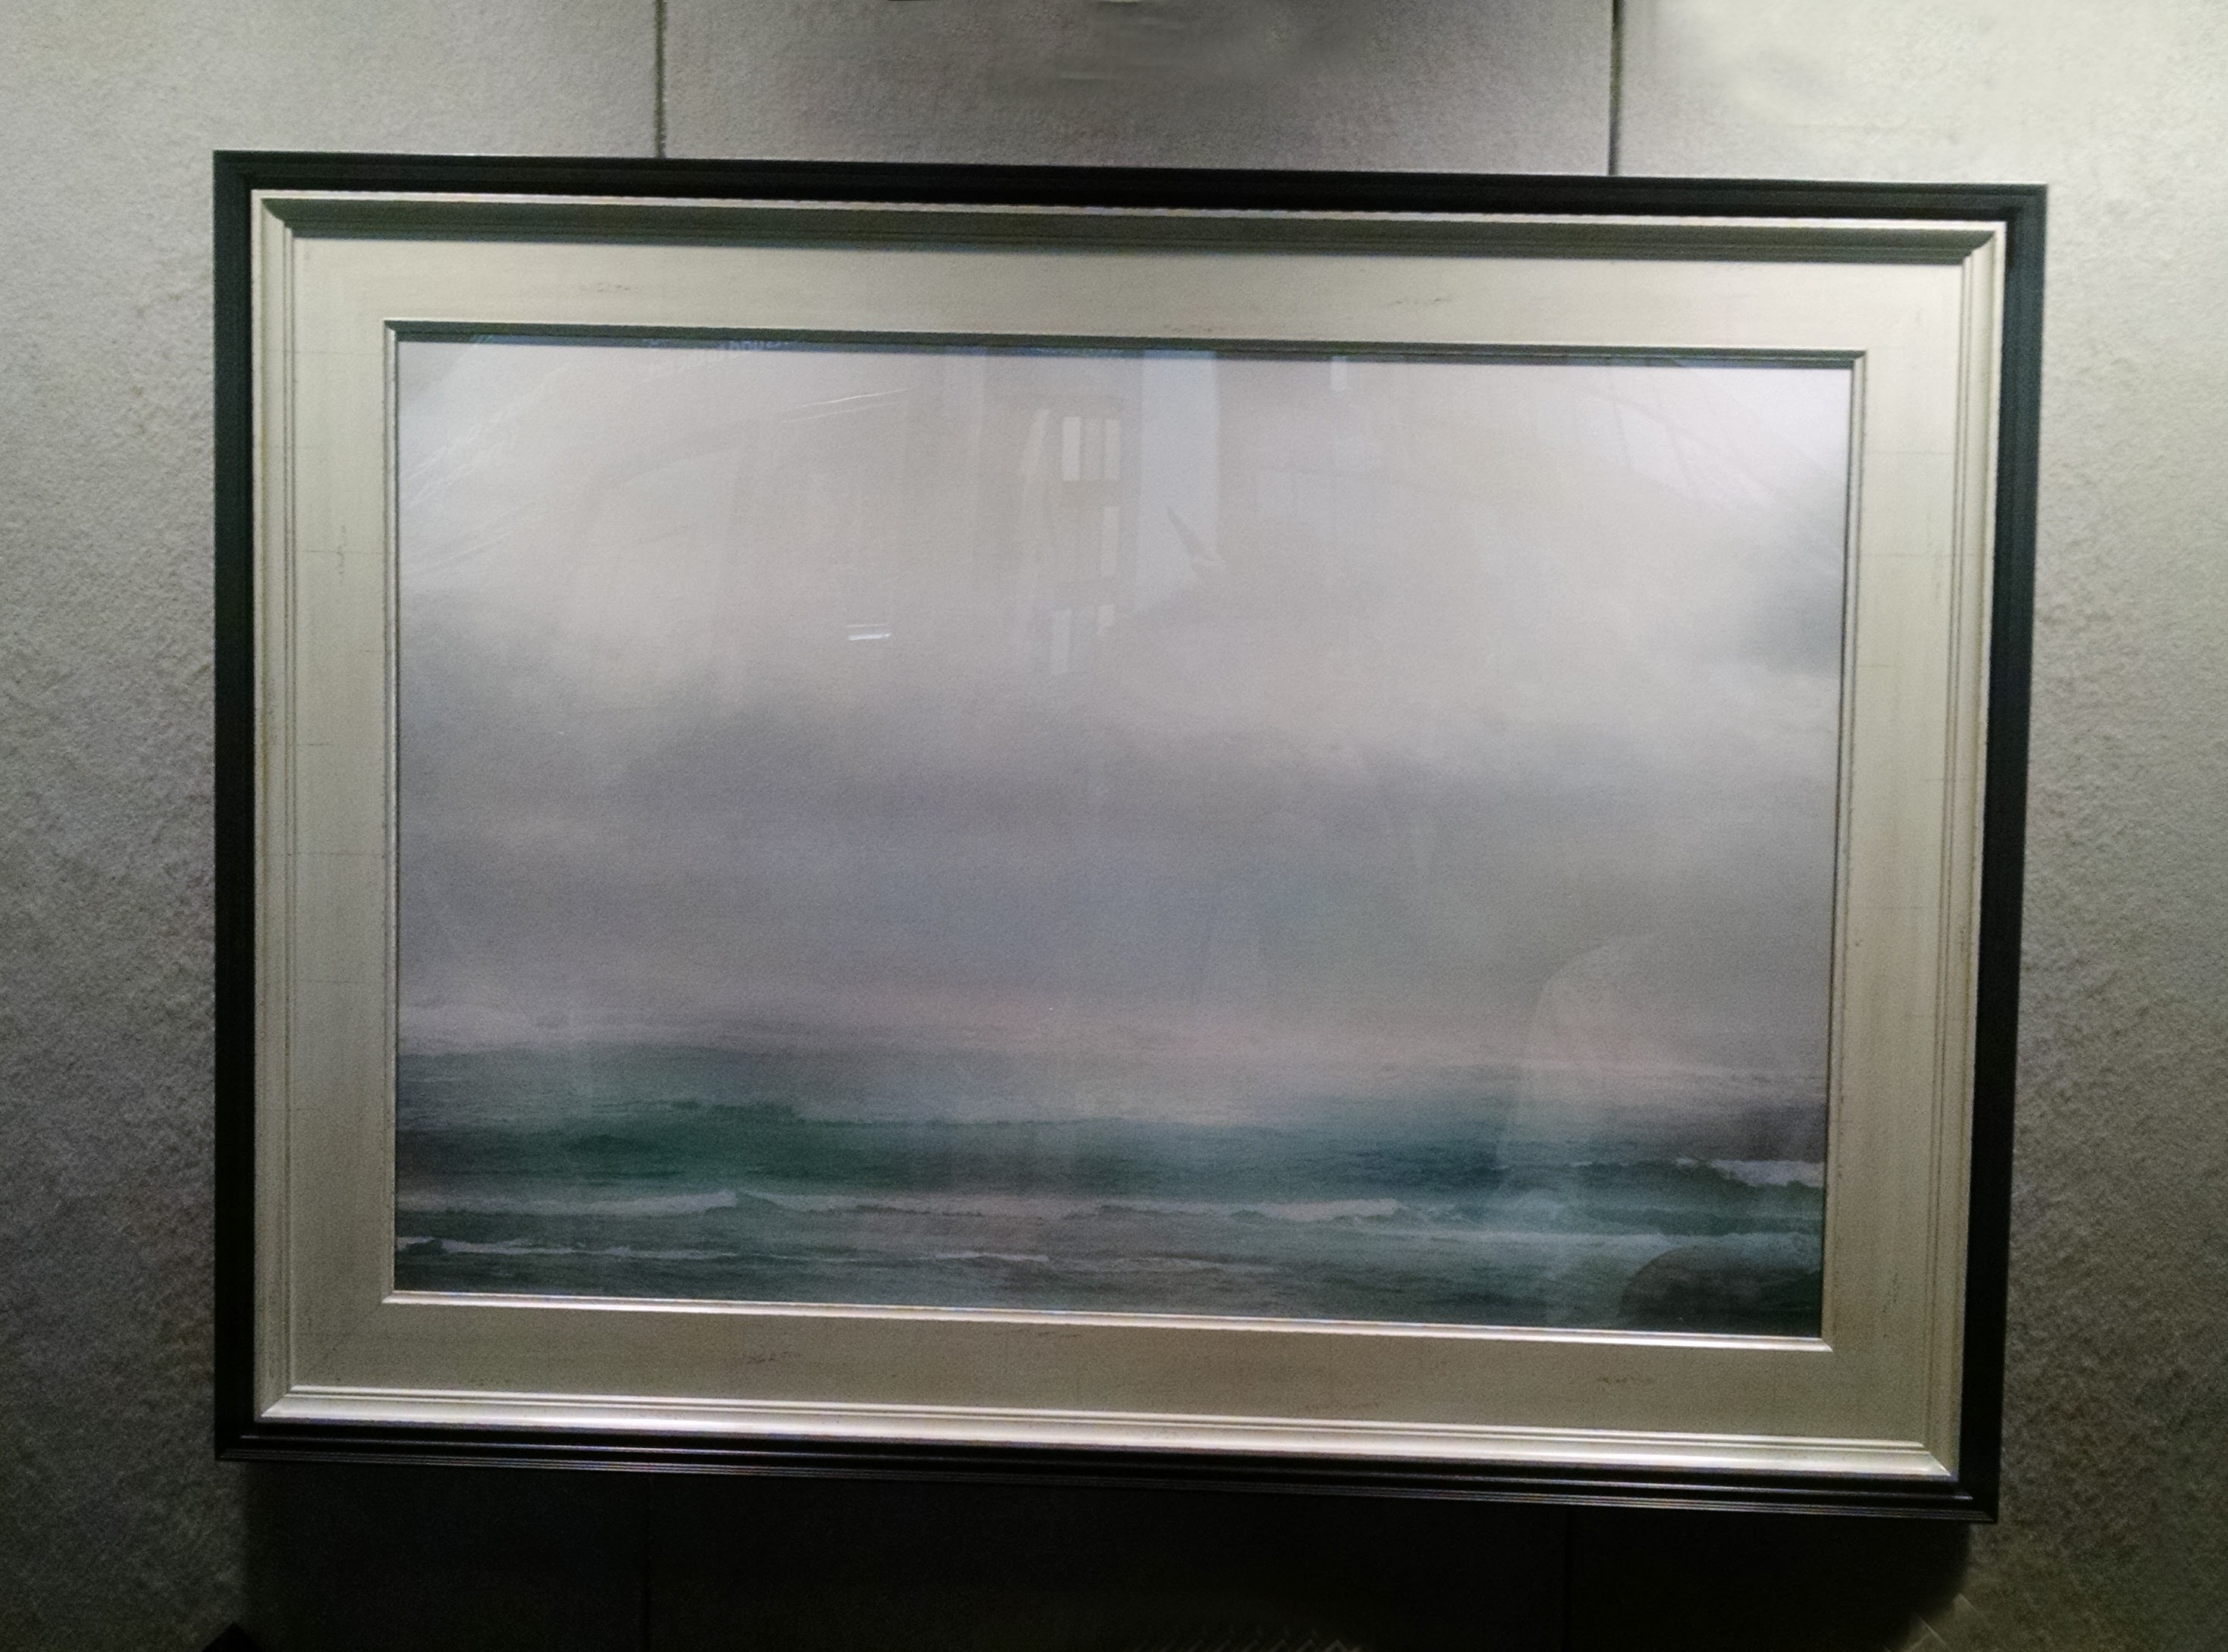 art framing. If You Would Like More Information About Fine Art Framing Options, Please Come Browse One Of Our Three Locations And Chat With A Friendly Frame Artist . M